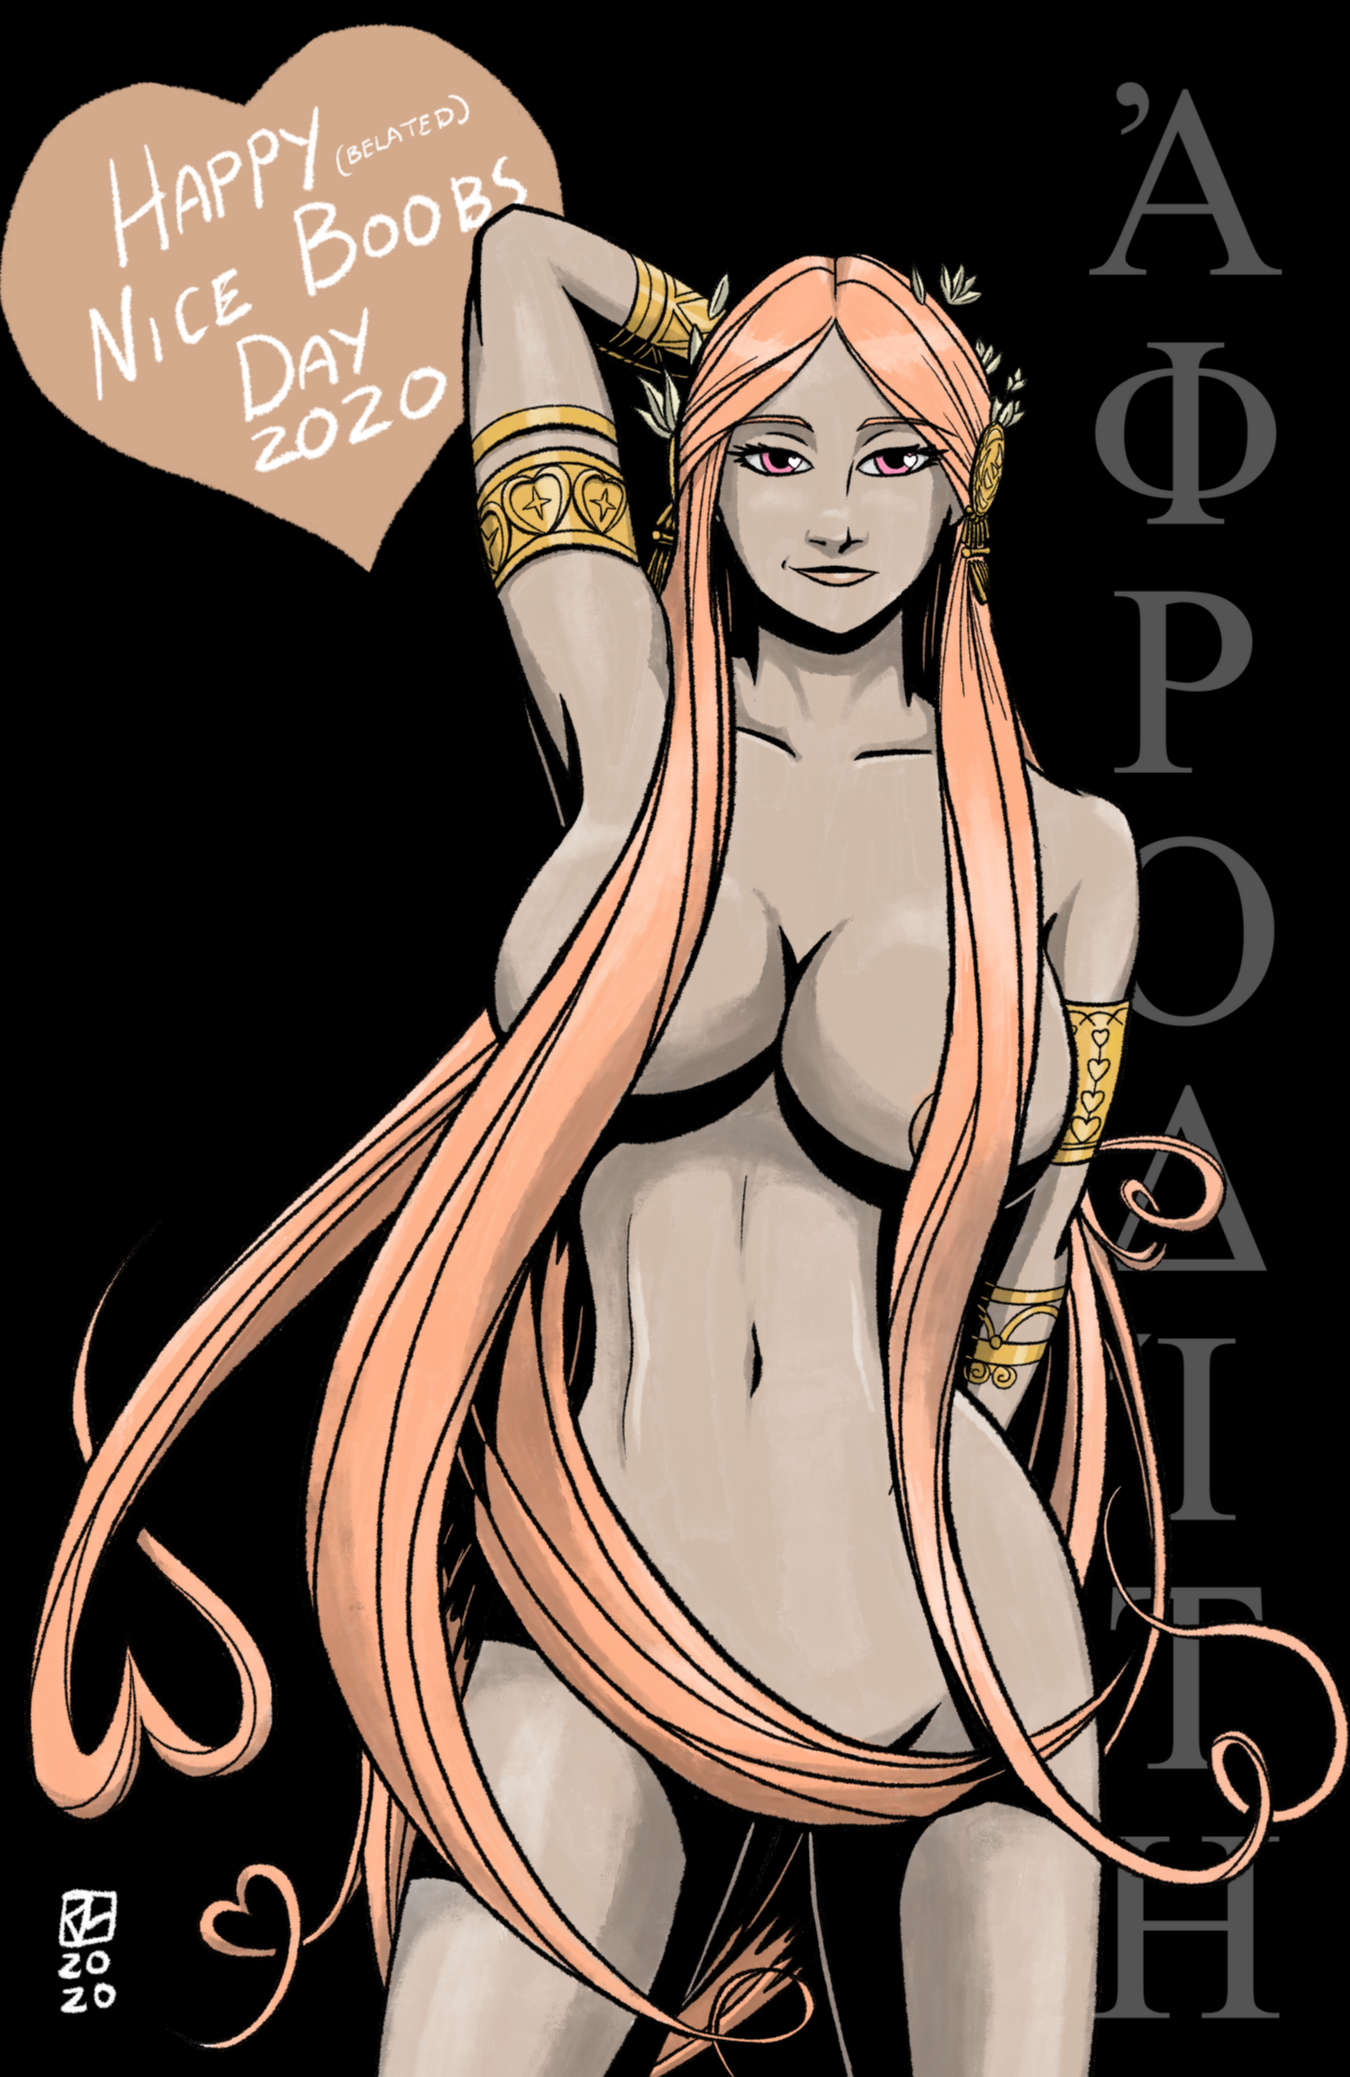 Aphrodite for Nice Boobs Day 2020